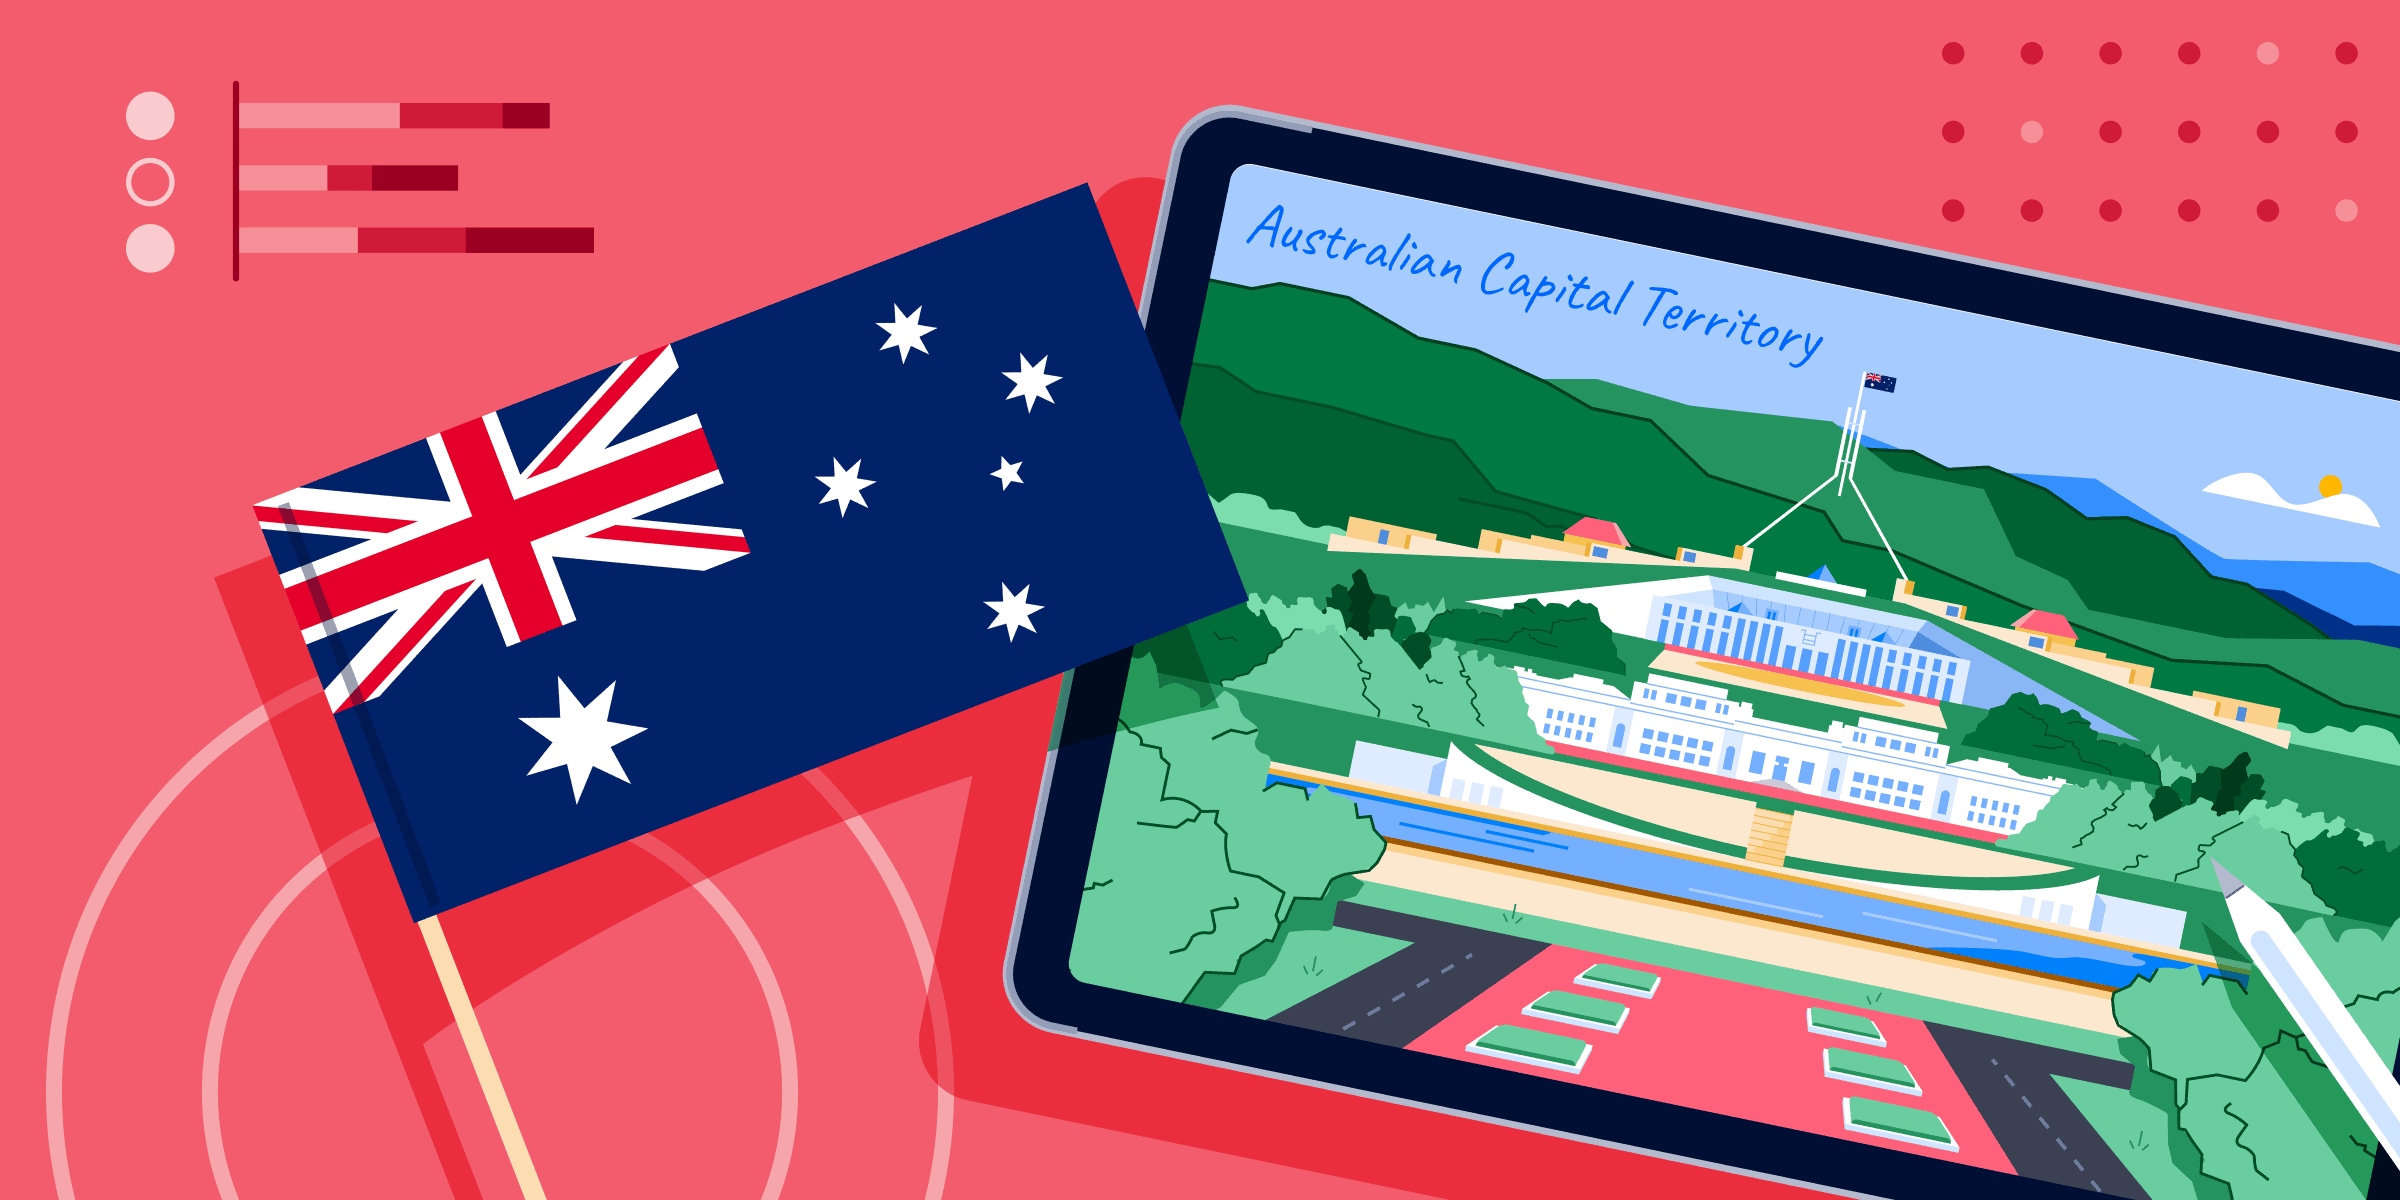 ApplyInsights: Rising Demand for In-Person International Education in Australia blog banner with AU flag and image of Capital Territory